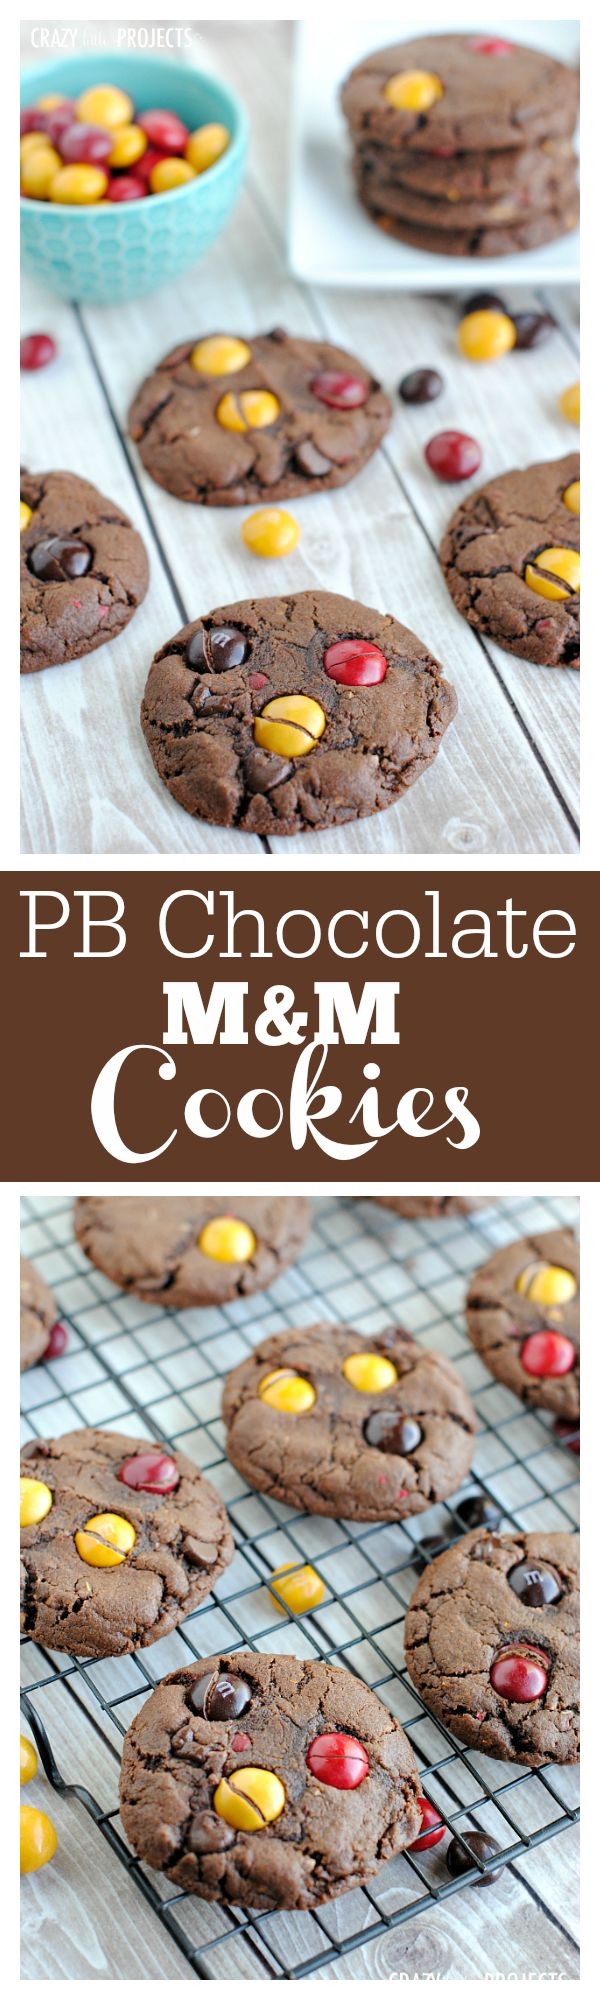 Peanut Butter Chocolate Cookie with Peanut Butter M&Ms Inside!